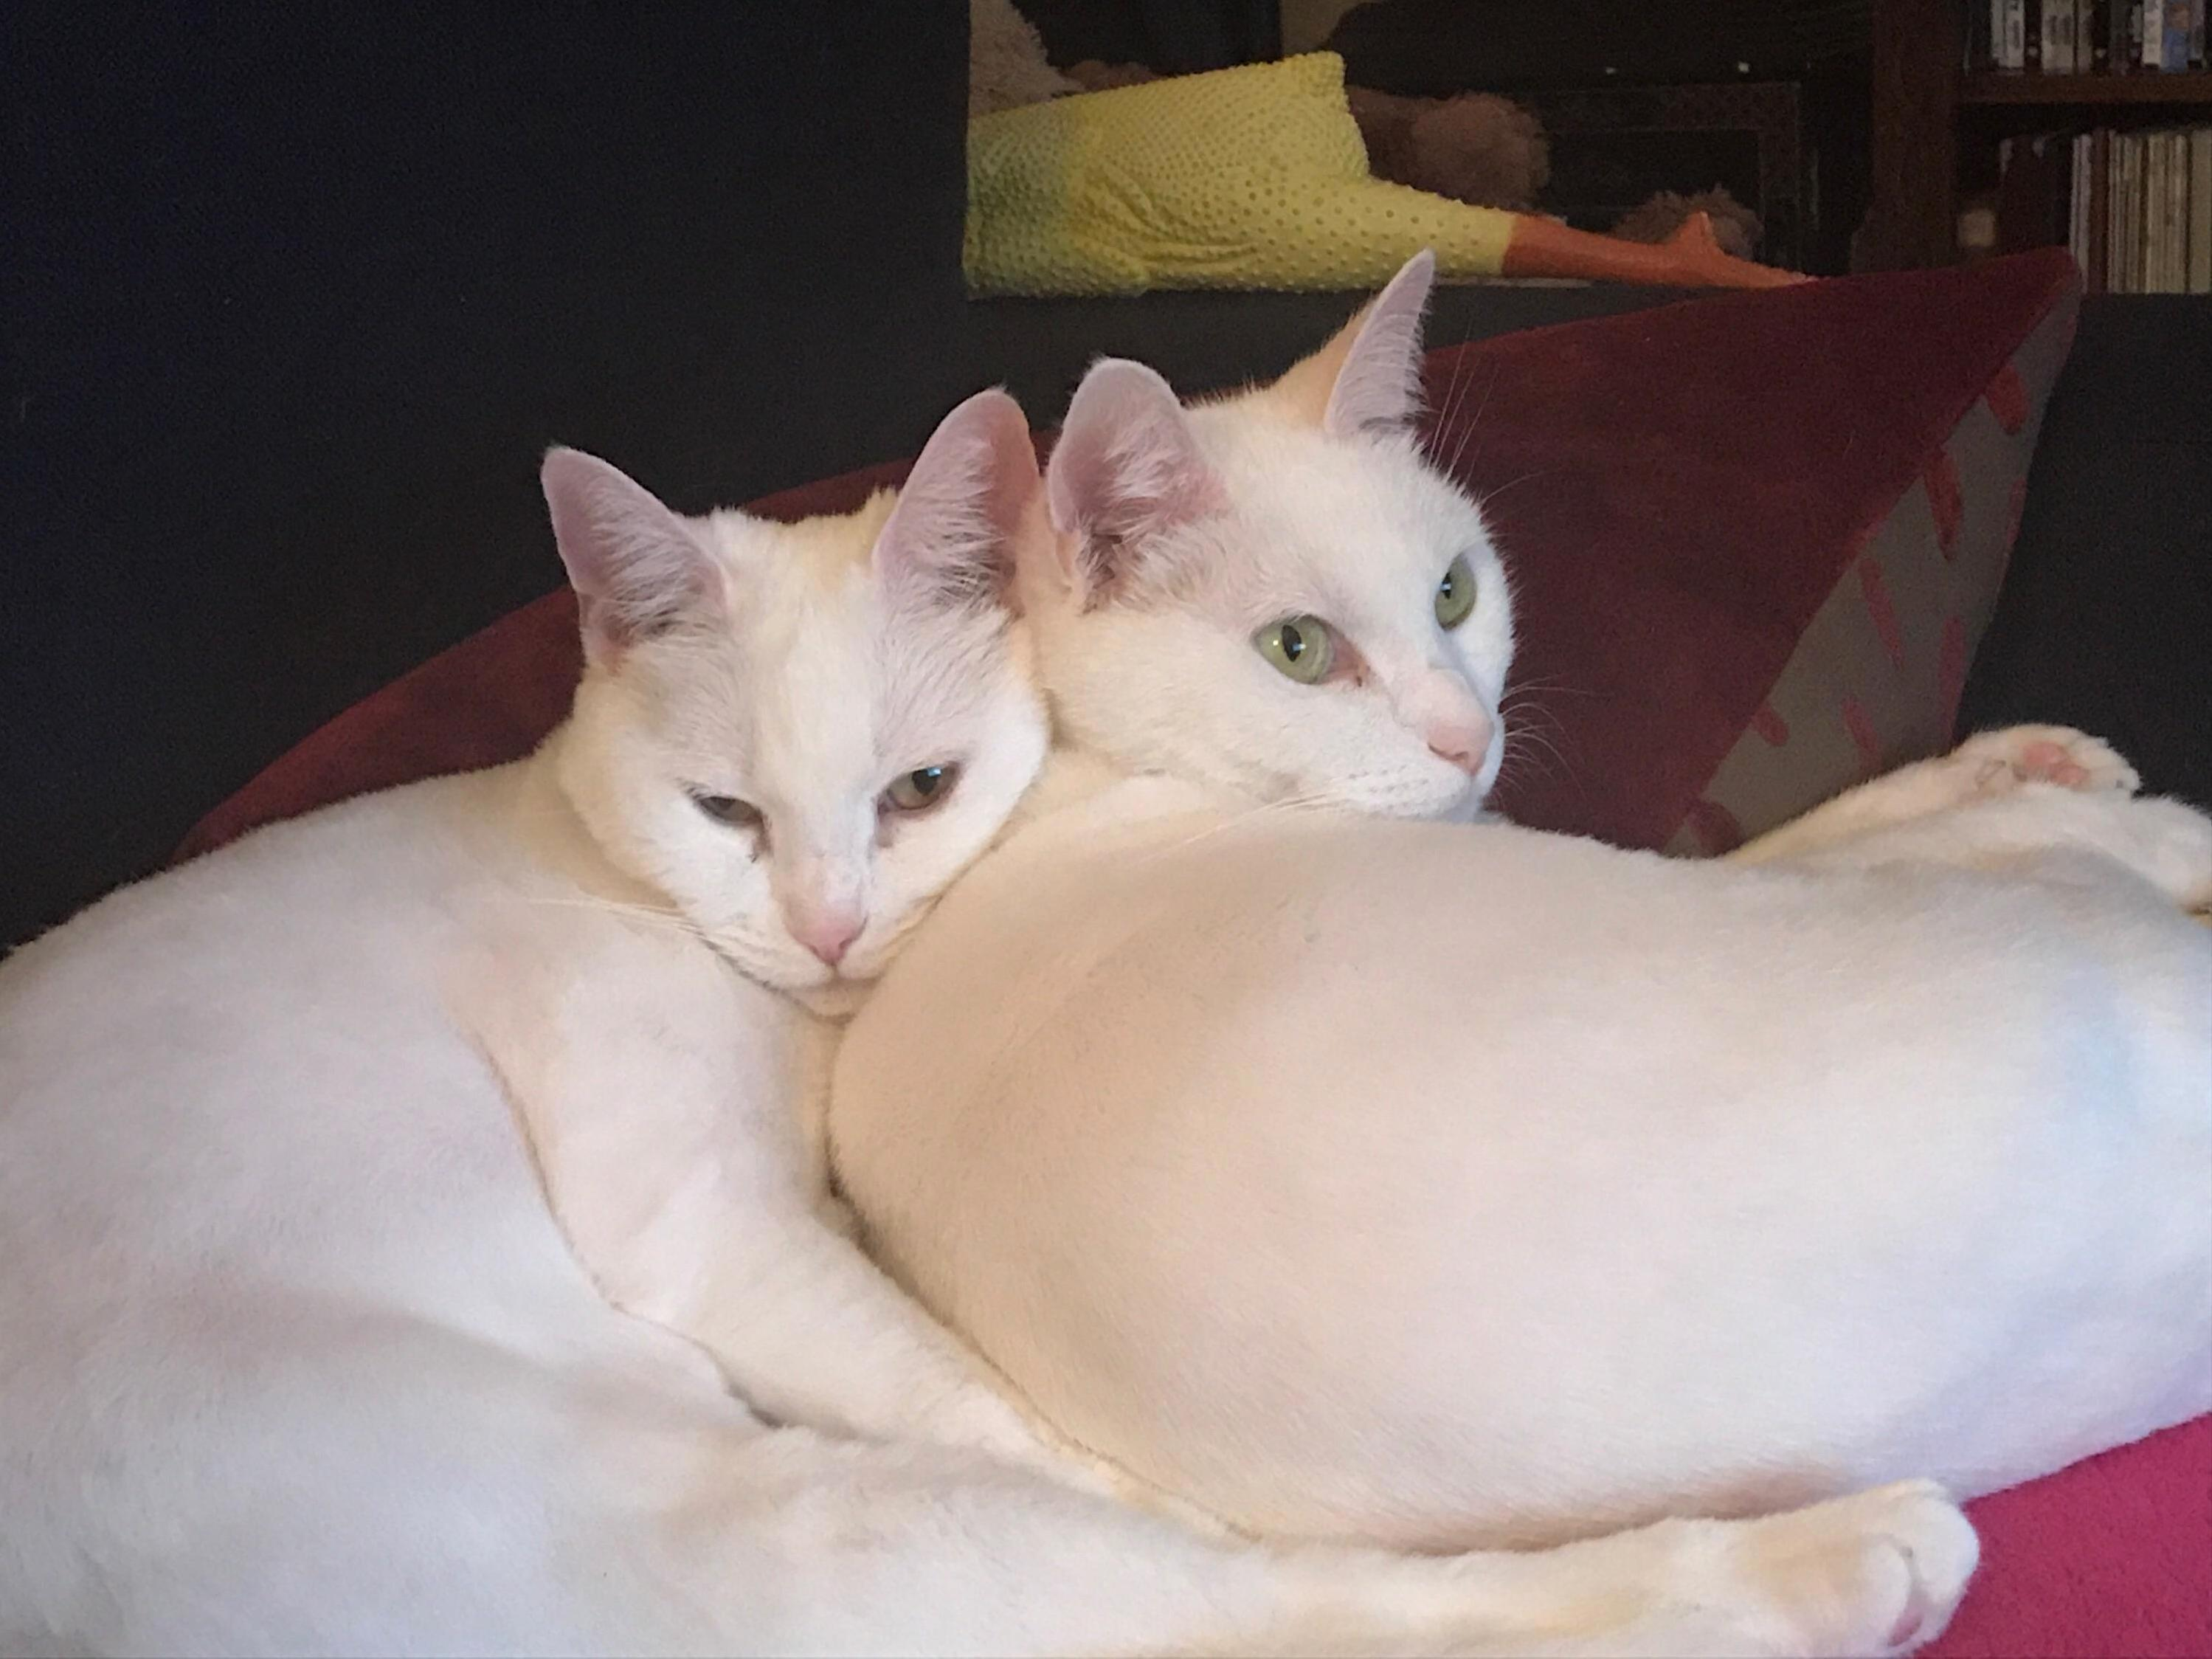 Found my cats doppelgangers on this sub. got excited enough to post for the first time ever!